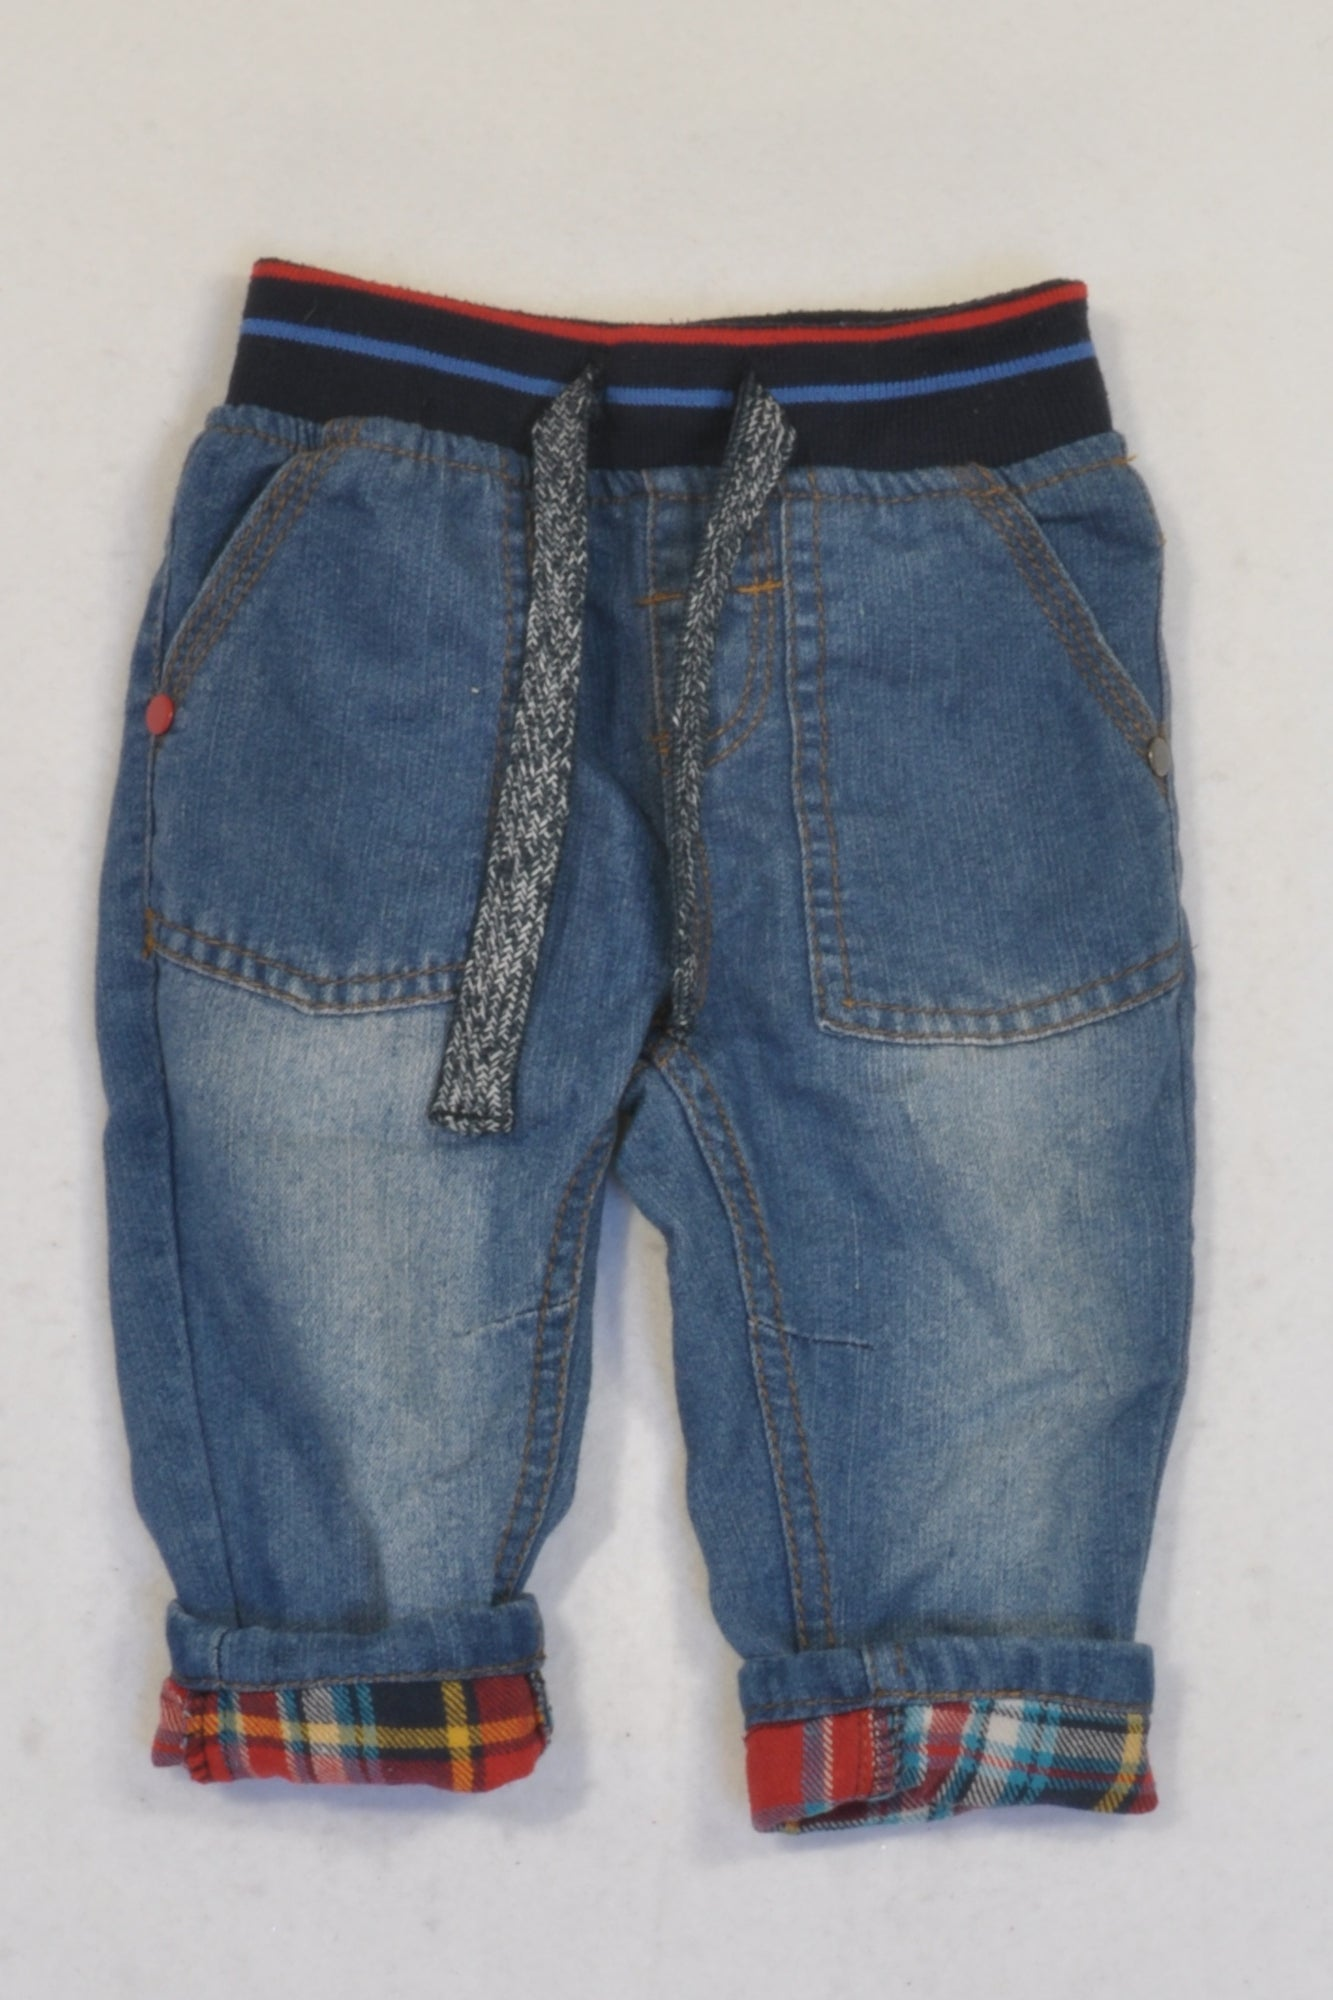 Ackermans Denim Banded & Red Tartan Trim Jeans Boys 3-6 months